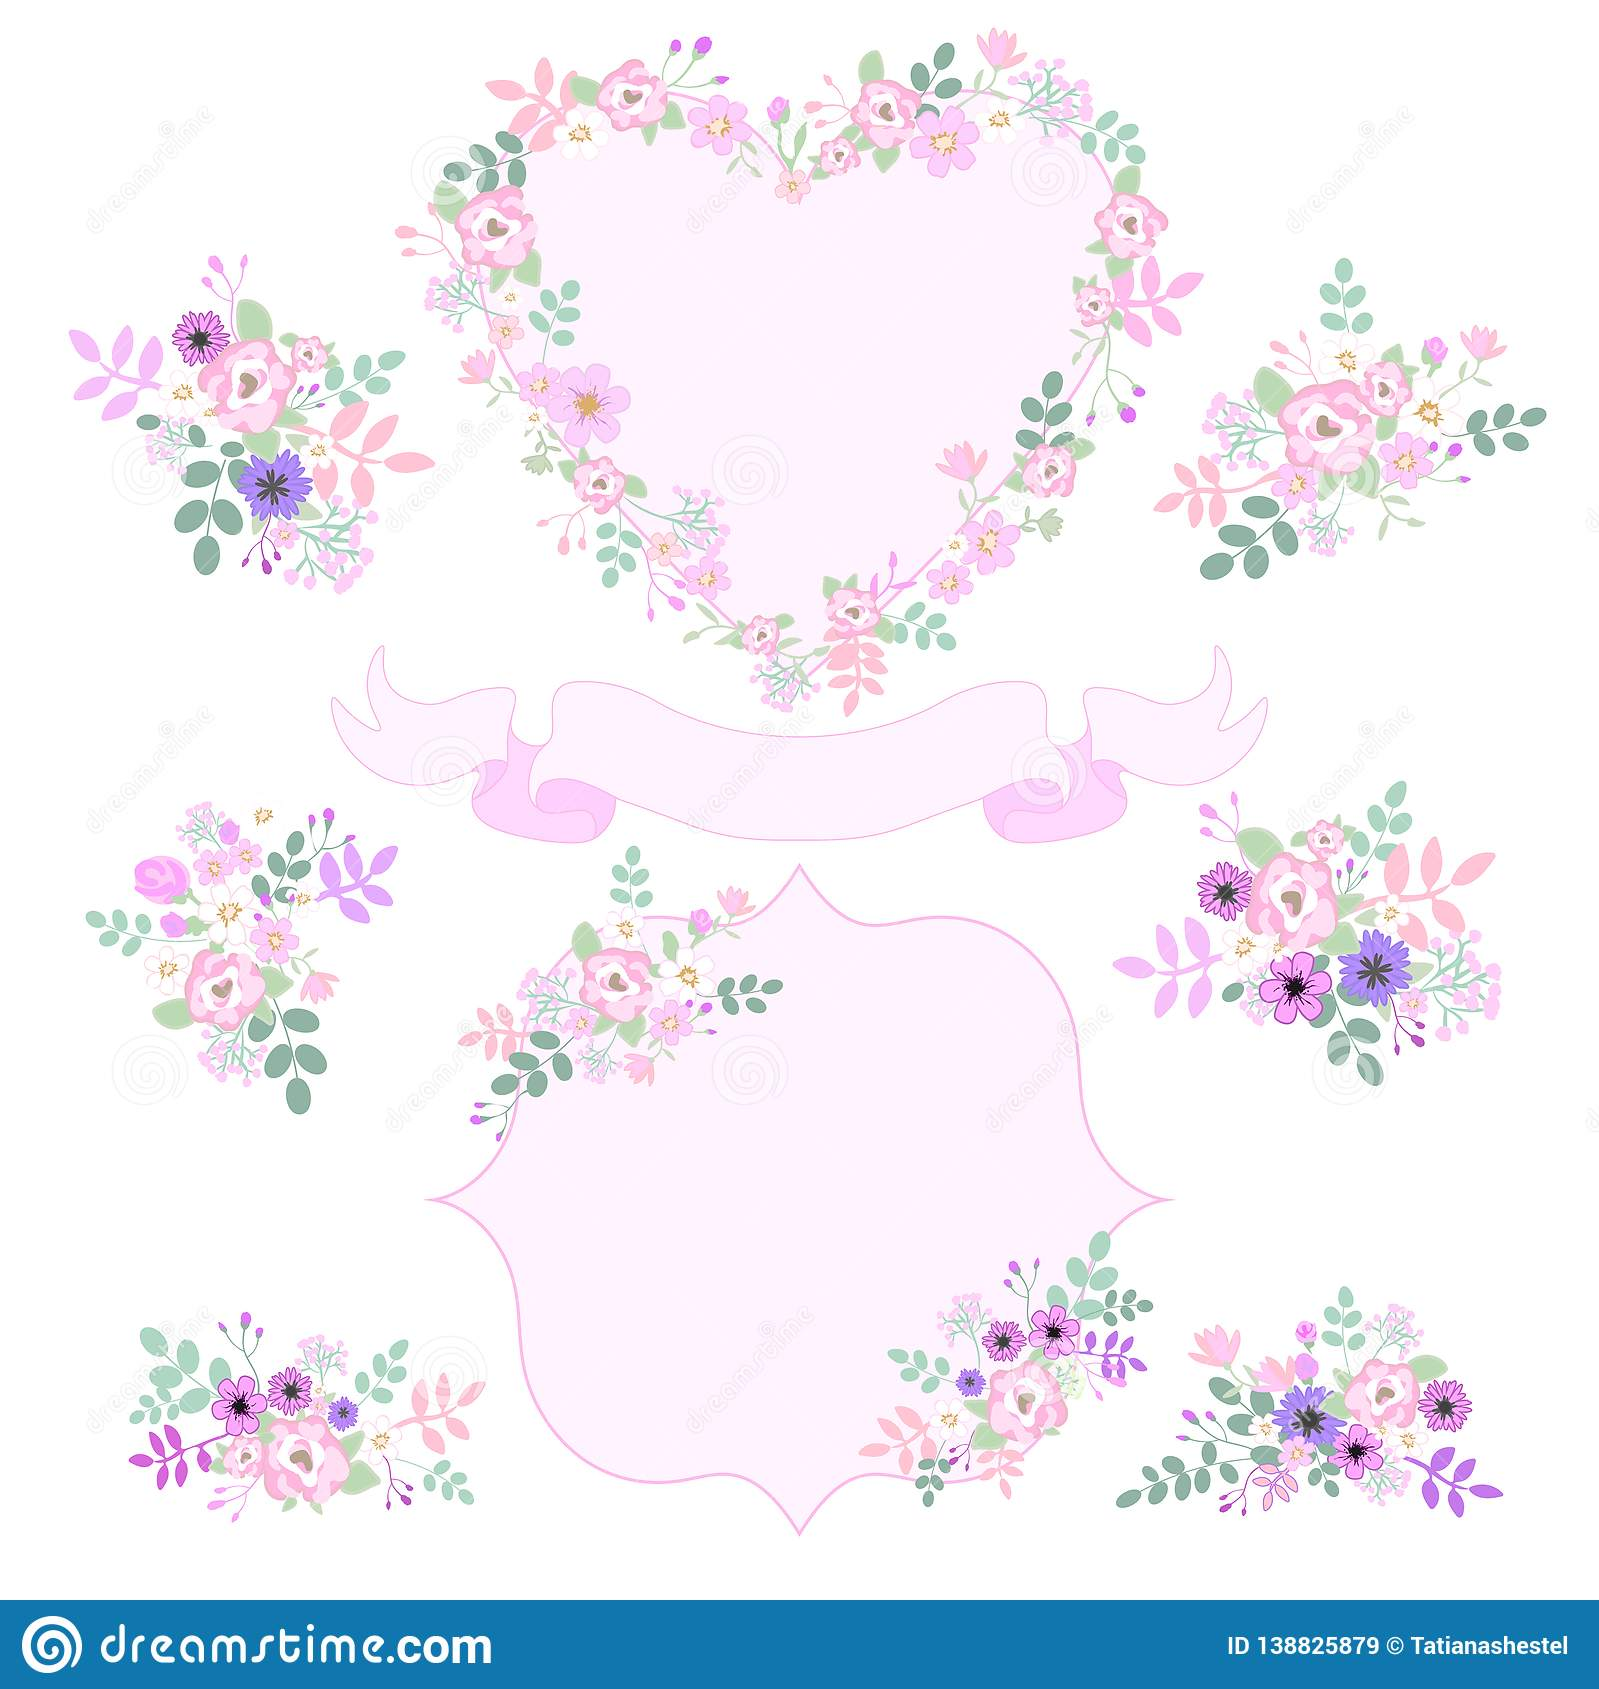 set of vintage pink and purple flowers isolated on white background template for wedding card invitations heart shape ribbon b stock illustration illustration of birthday frame 138825879 https www dreamstime com set floral vintage pink purple flowers isolated white background template wedding card invitations heart shape image138825879